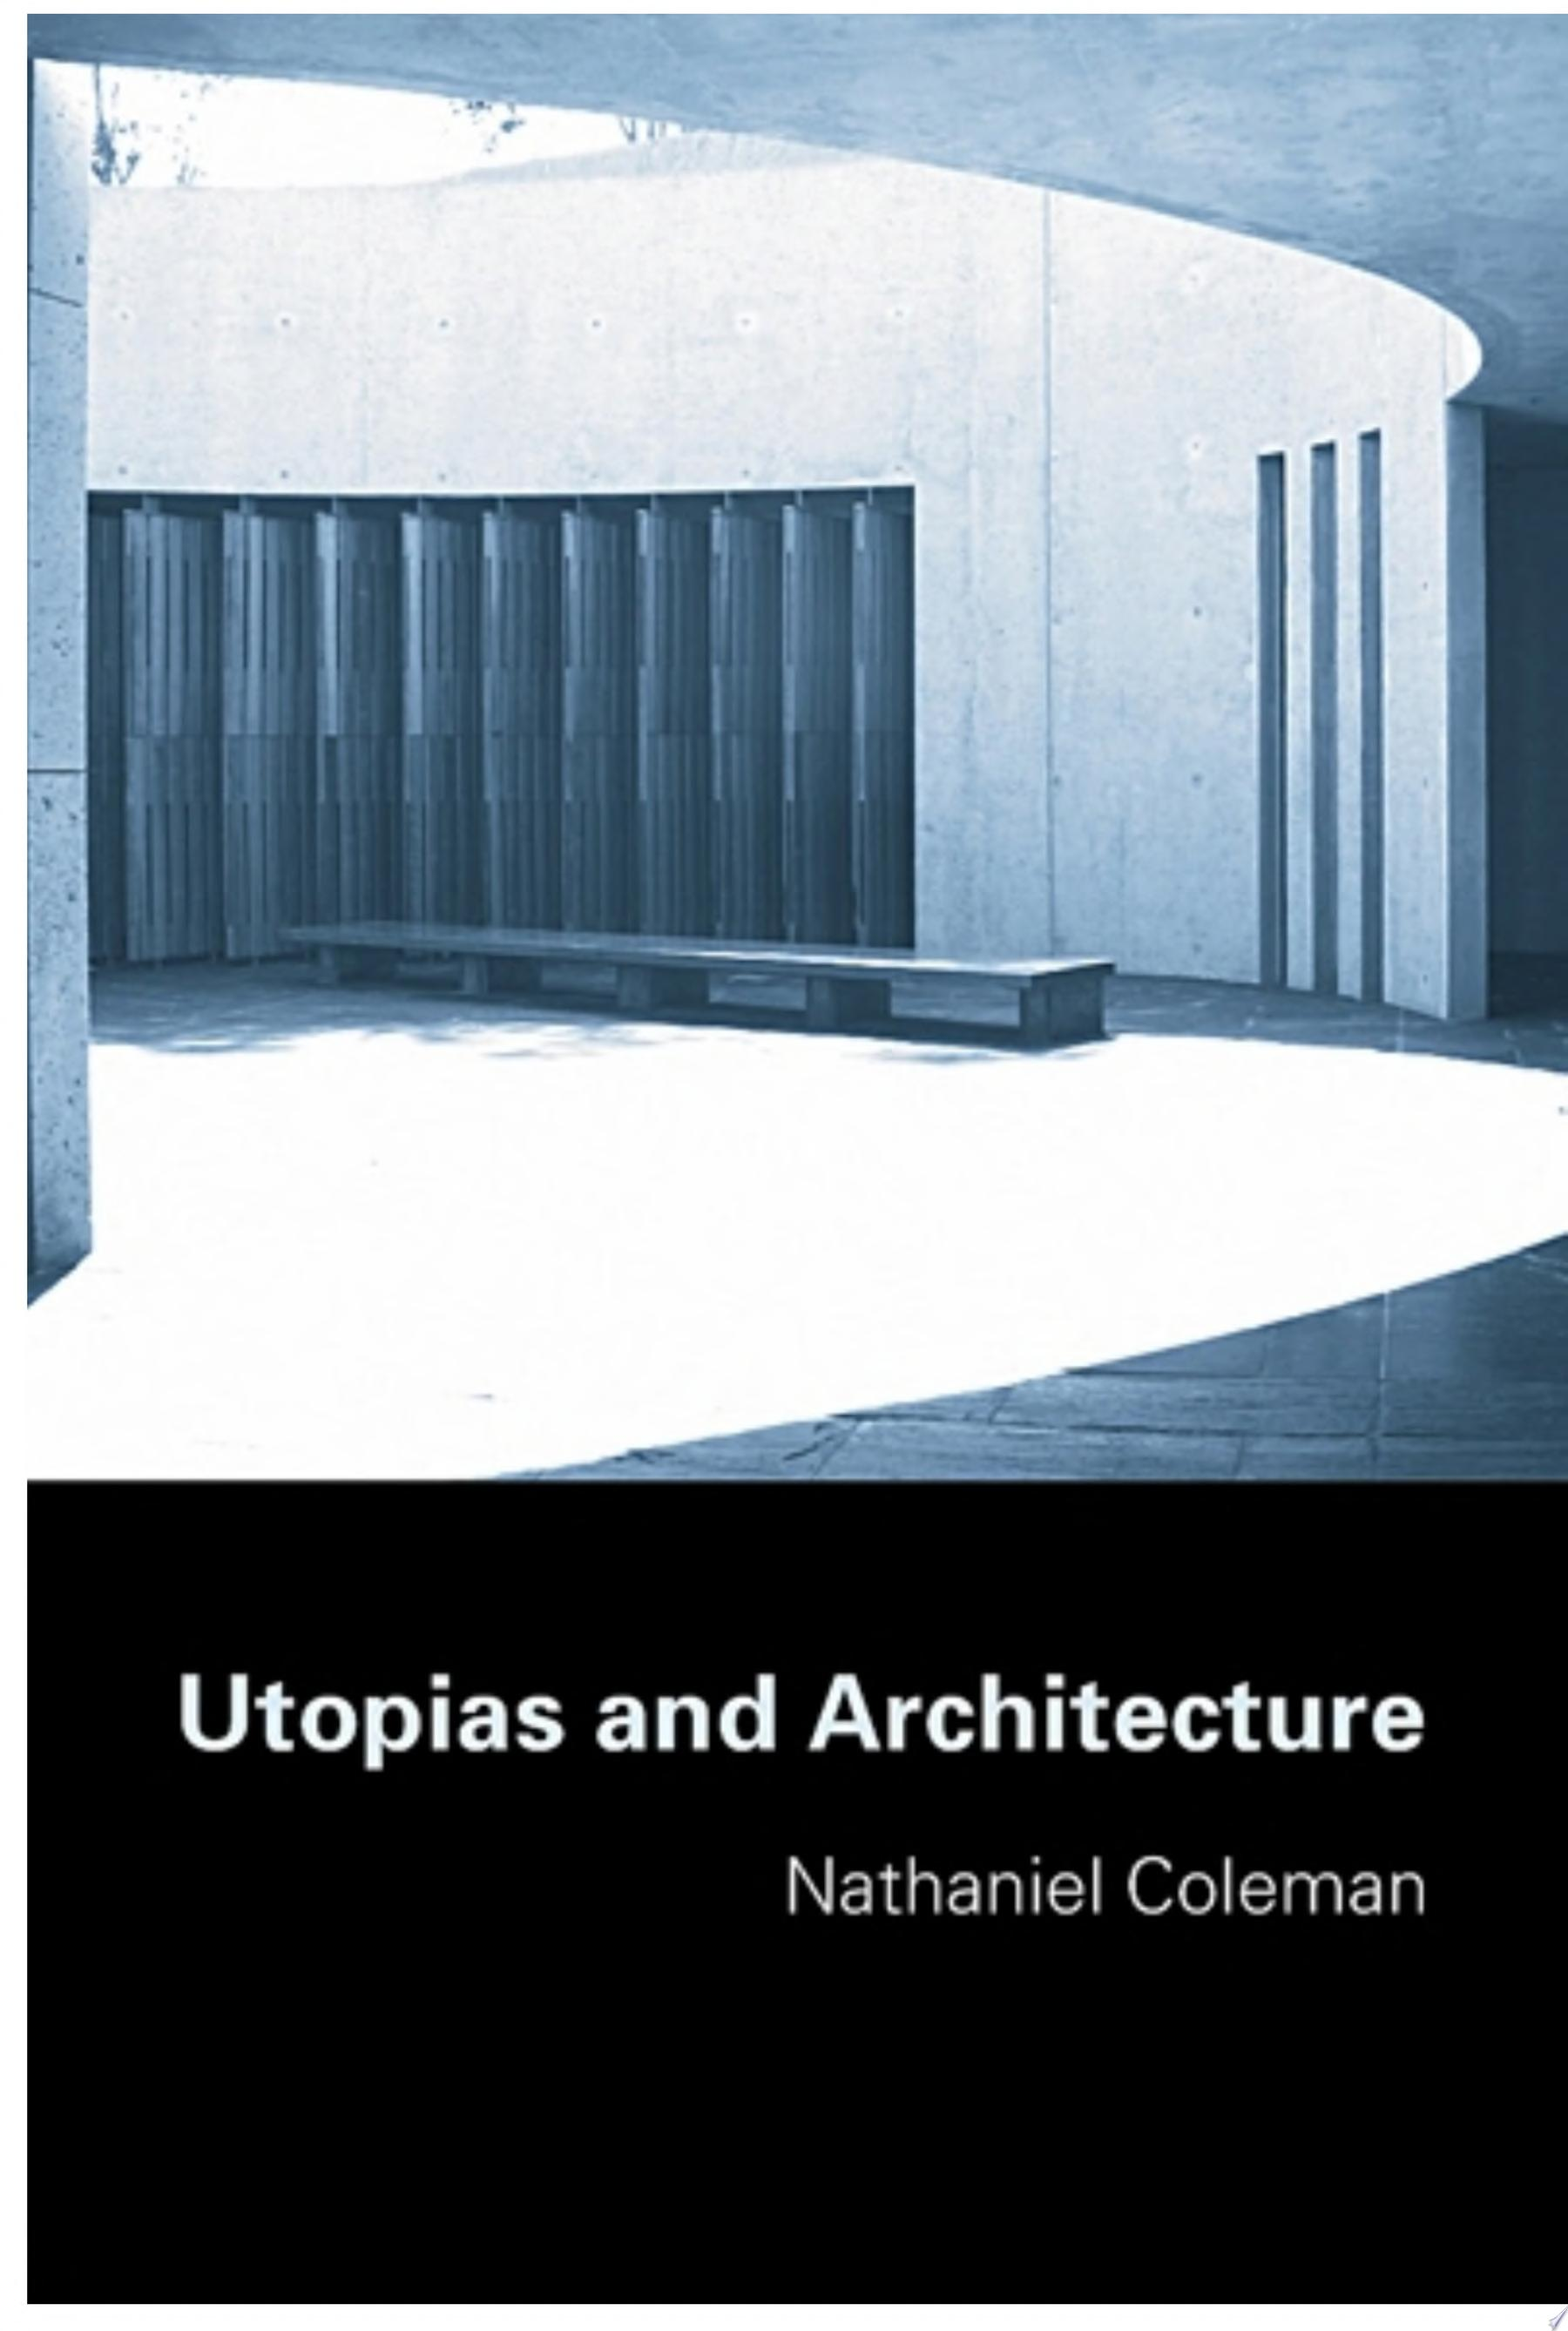 Utopias and Architecture